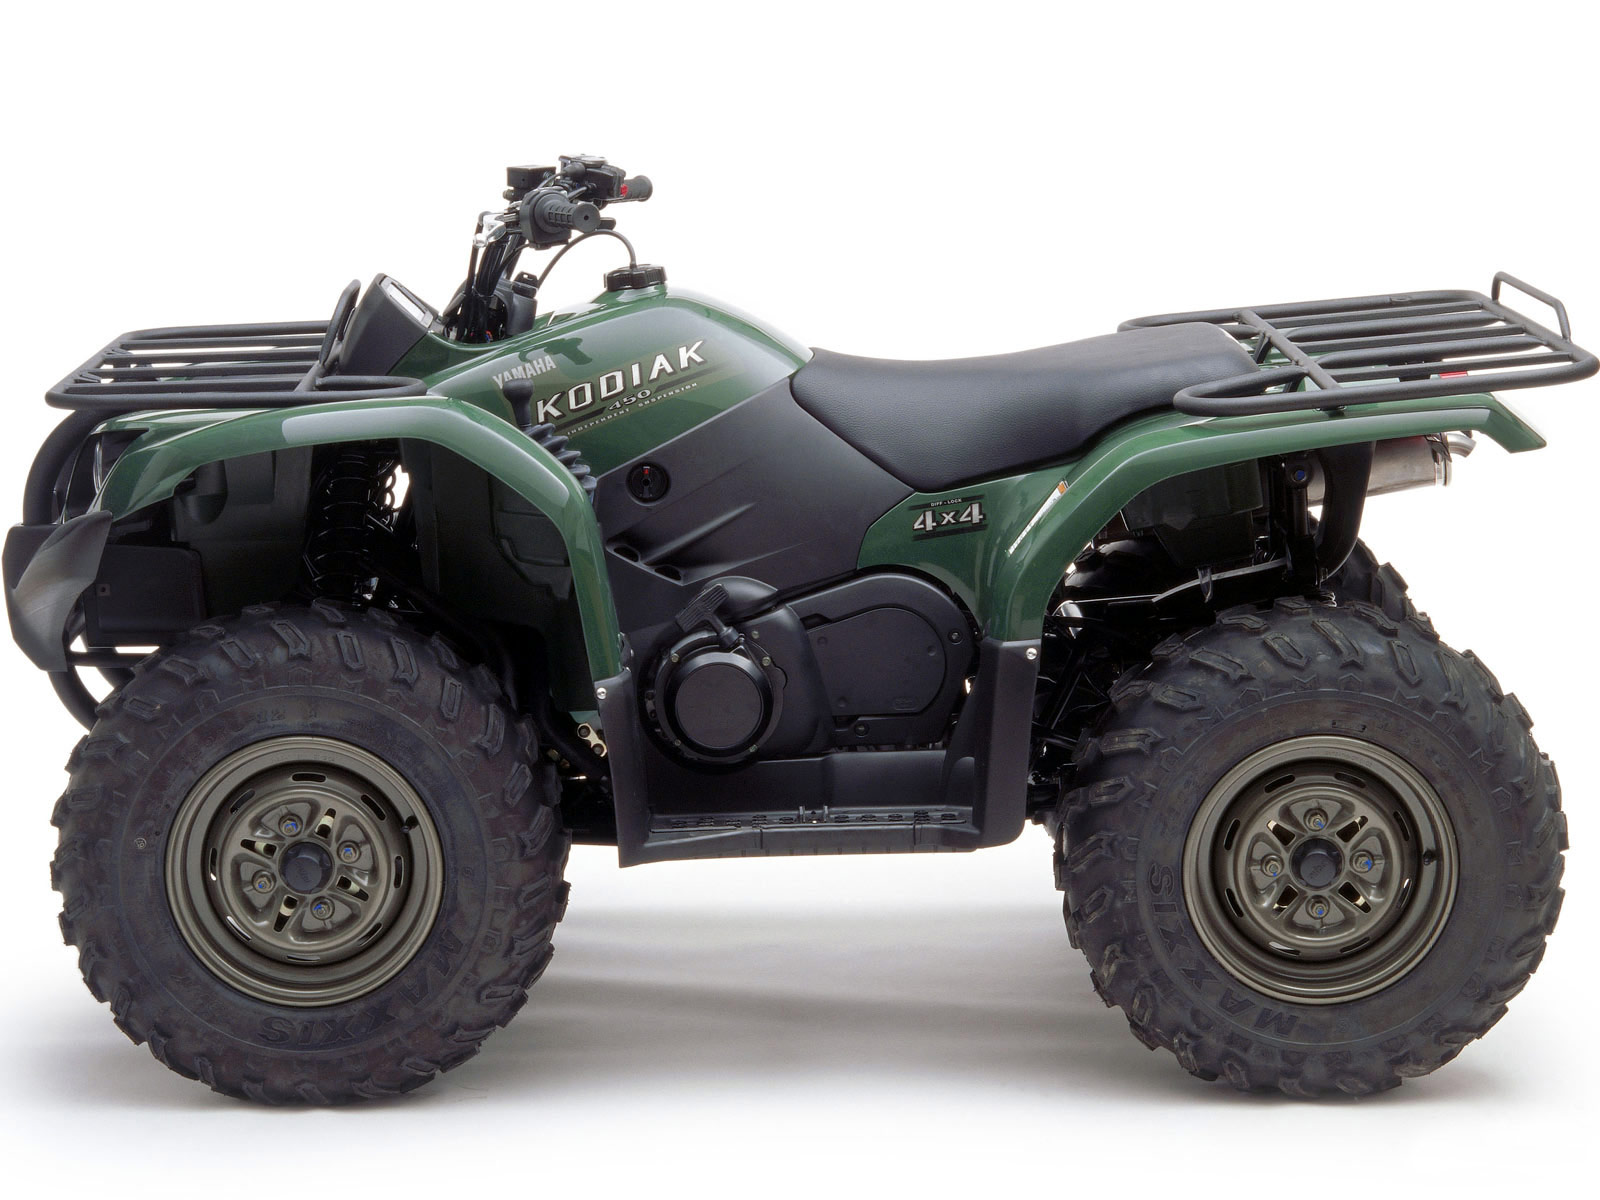 2005 yamaha kodiak 450 atv pictures specifications